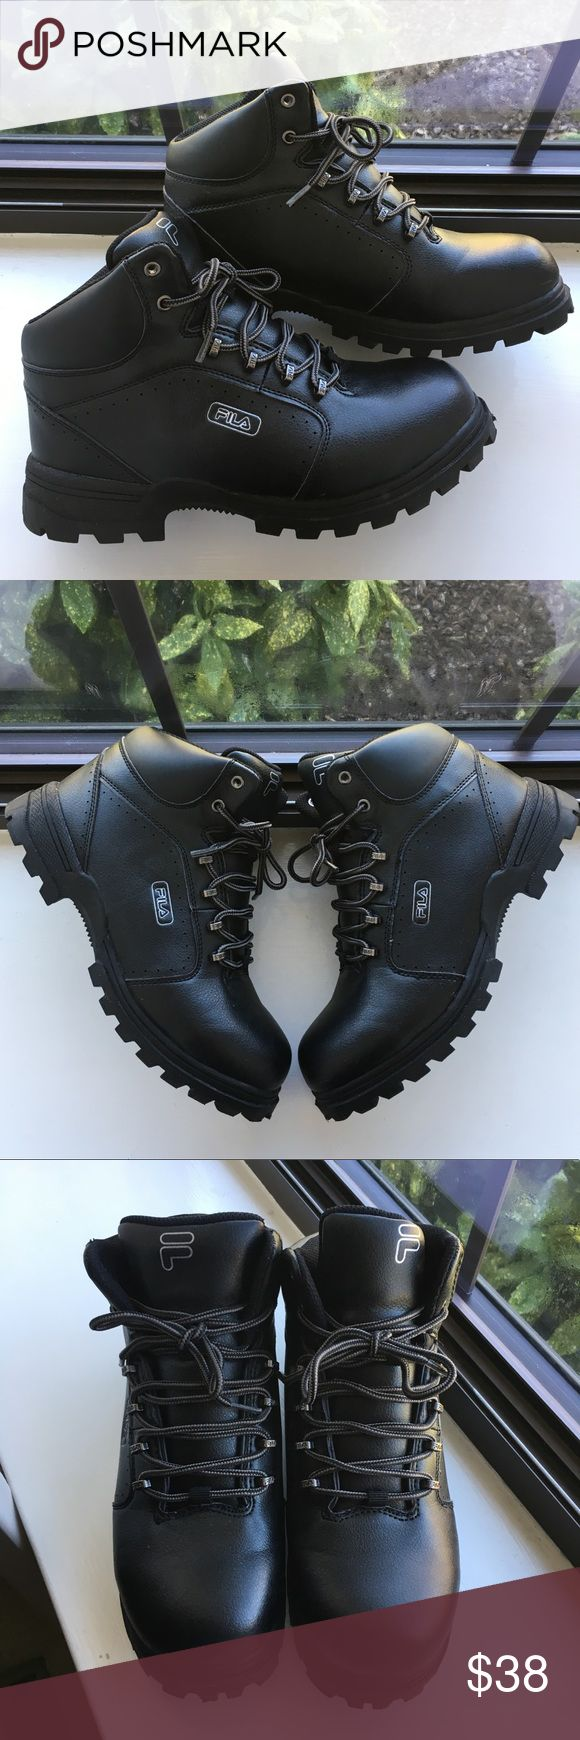 FILA Black Hiking Boots size 6.5 FILA Black Hiking Boots  Kids size 6.5 Great condition, like new. My son wore them once only to school. He doesn't like high tops. Questions? Please ask prior to purchasing. Fila Shoes Boots